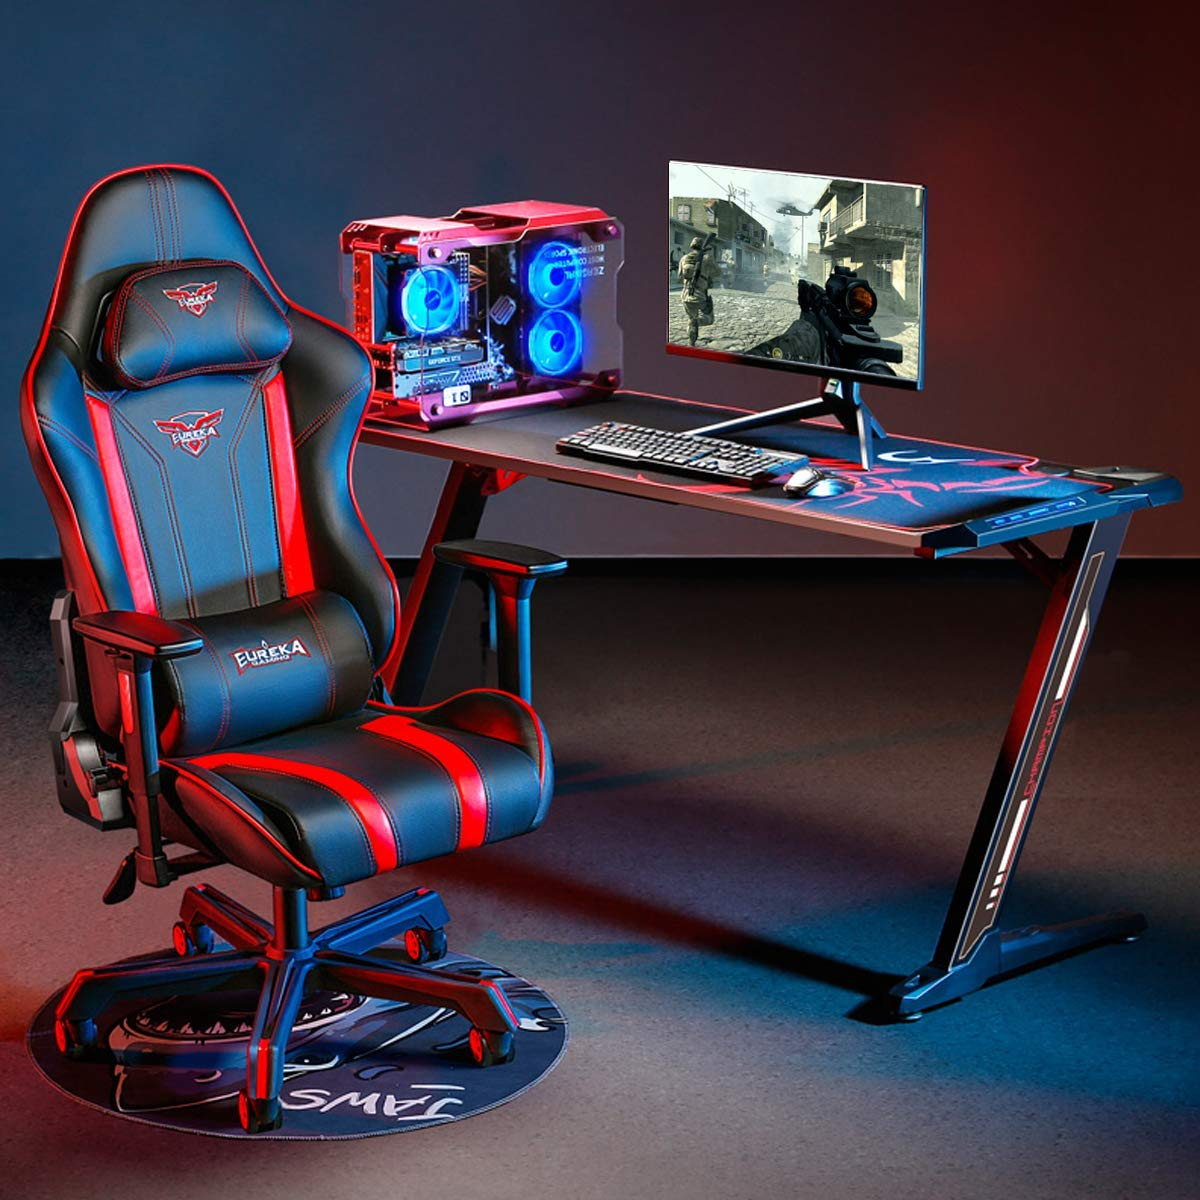 EUREKA ERGONOMIC Z60 Gaming Desk